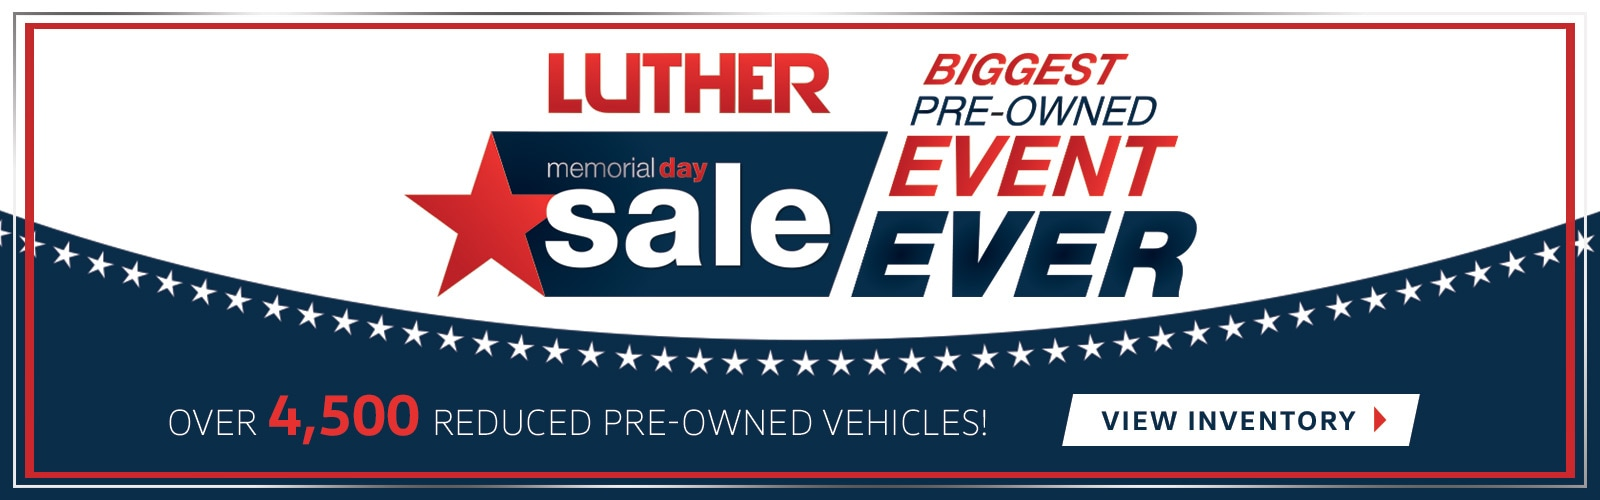 luther htm mn golden toyota new dealership rudy valley inventory avalon in